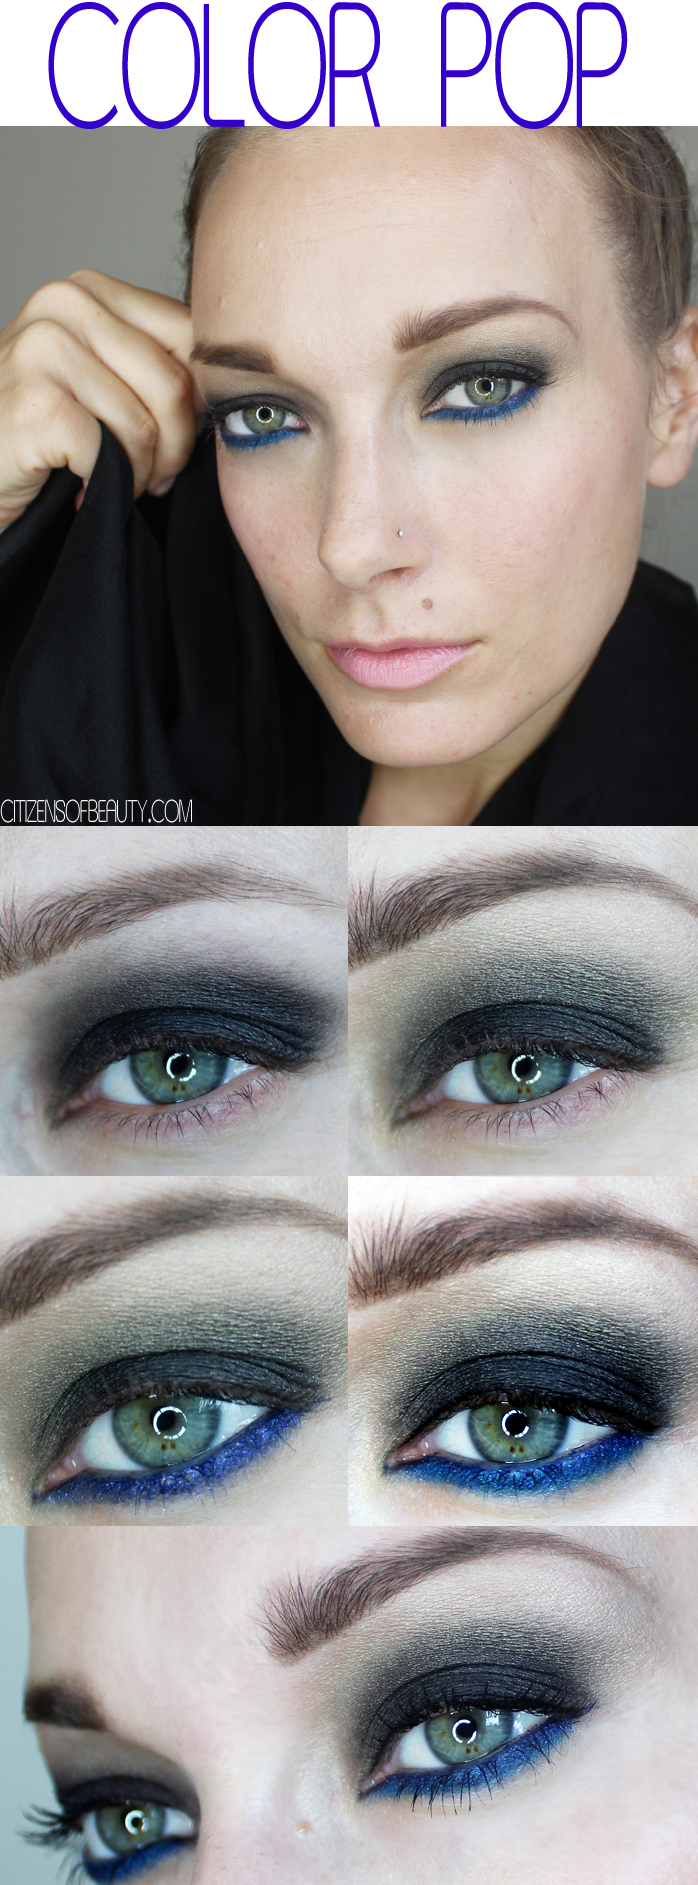 Fall Makeup Looks: COLOR POP Makeup Tutorial